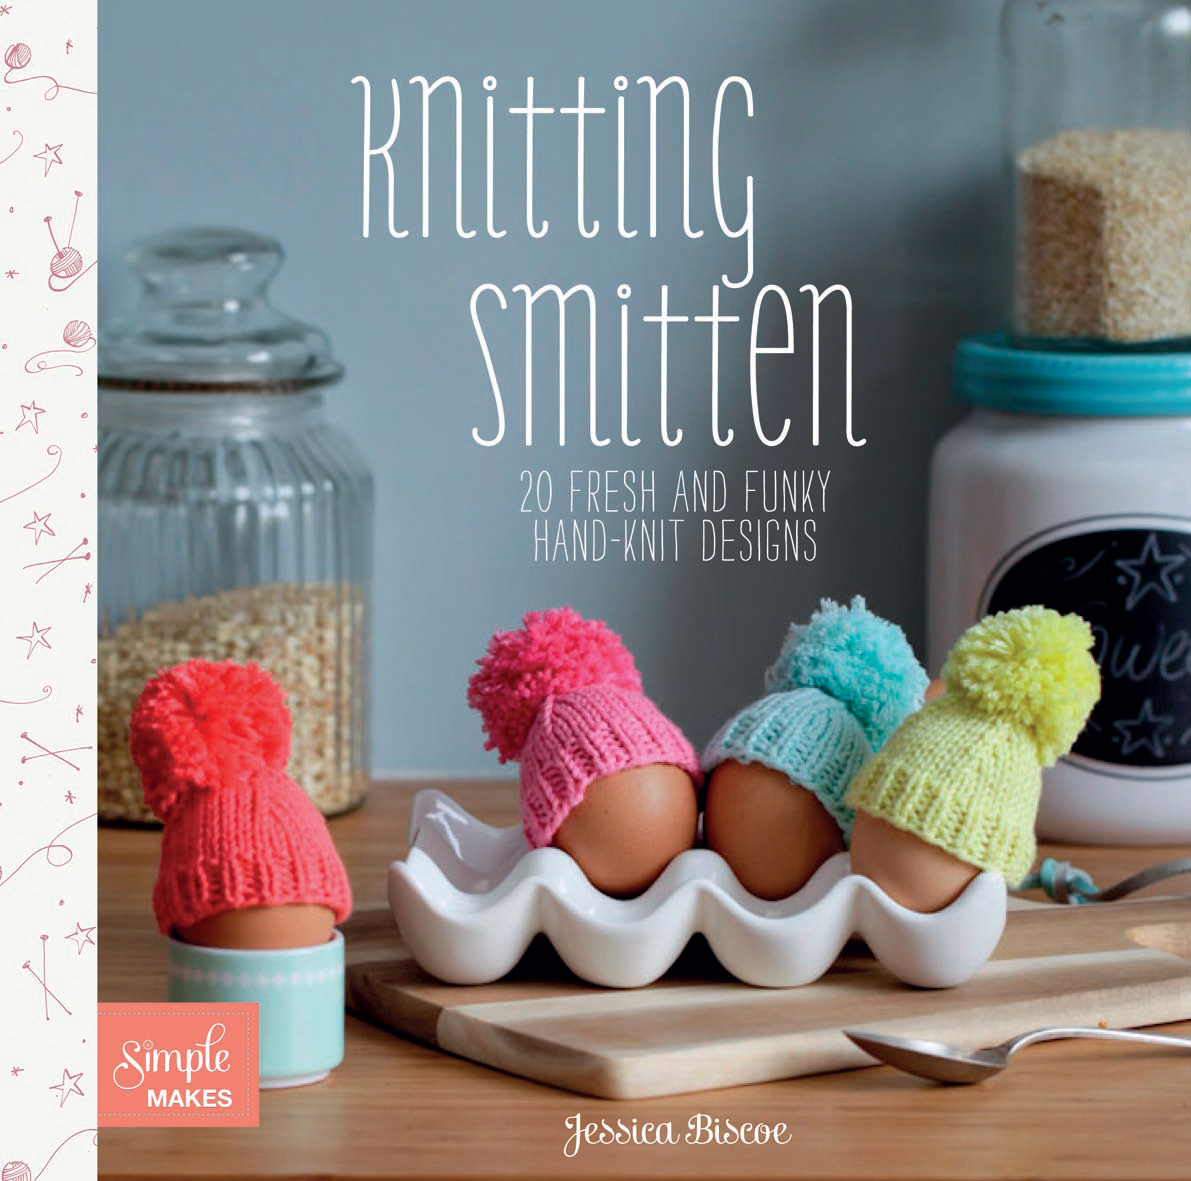 Knitting Smitten, Jessica Biscoe, giveaway, knitting book, knitting tips, flamingo cushion, how to cast on, casting on